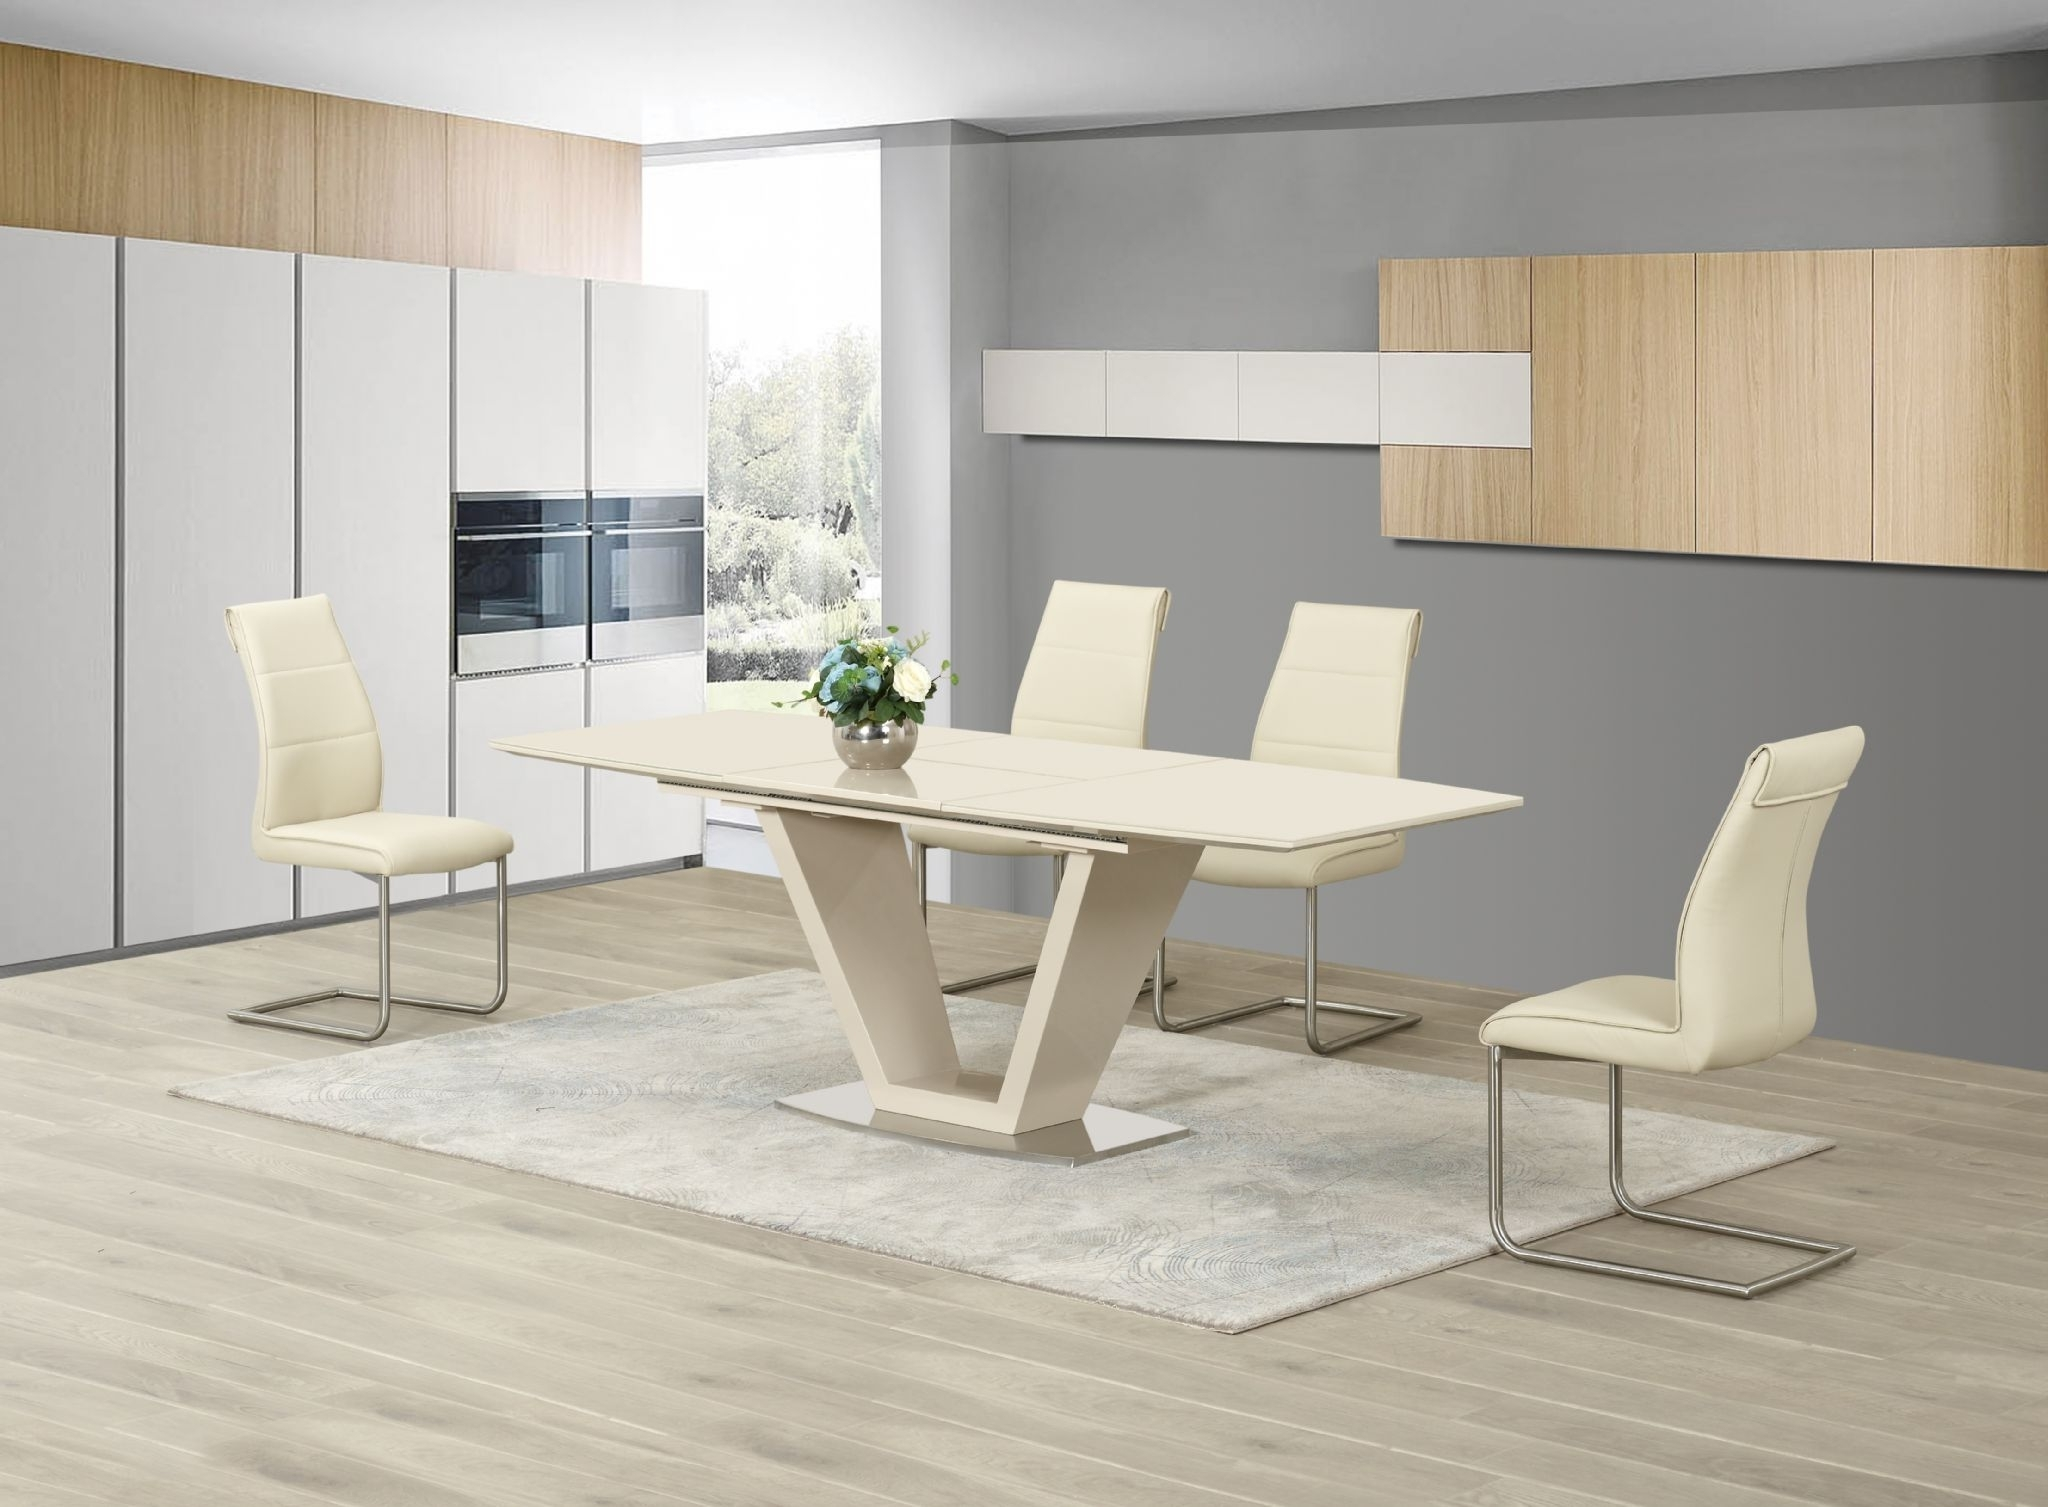 Most Current Extending Dining Tables With 6 Chairs With Ga Loriga Cream Gloss Glass Designer Dining Table Extending 160  (View 13 of 25)